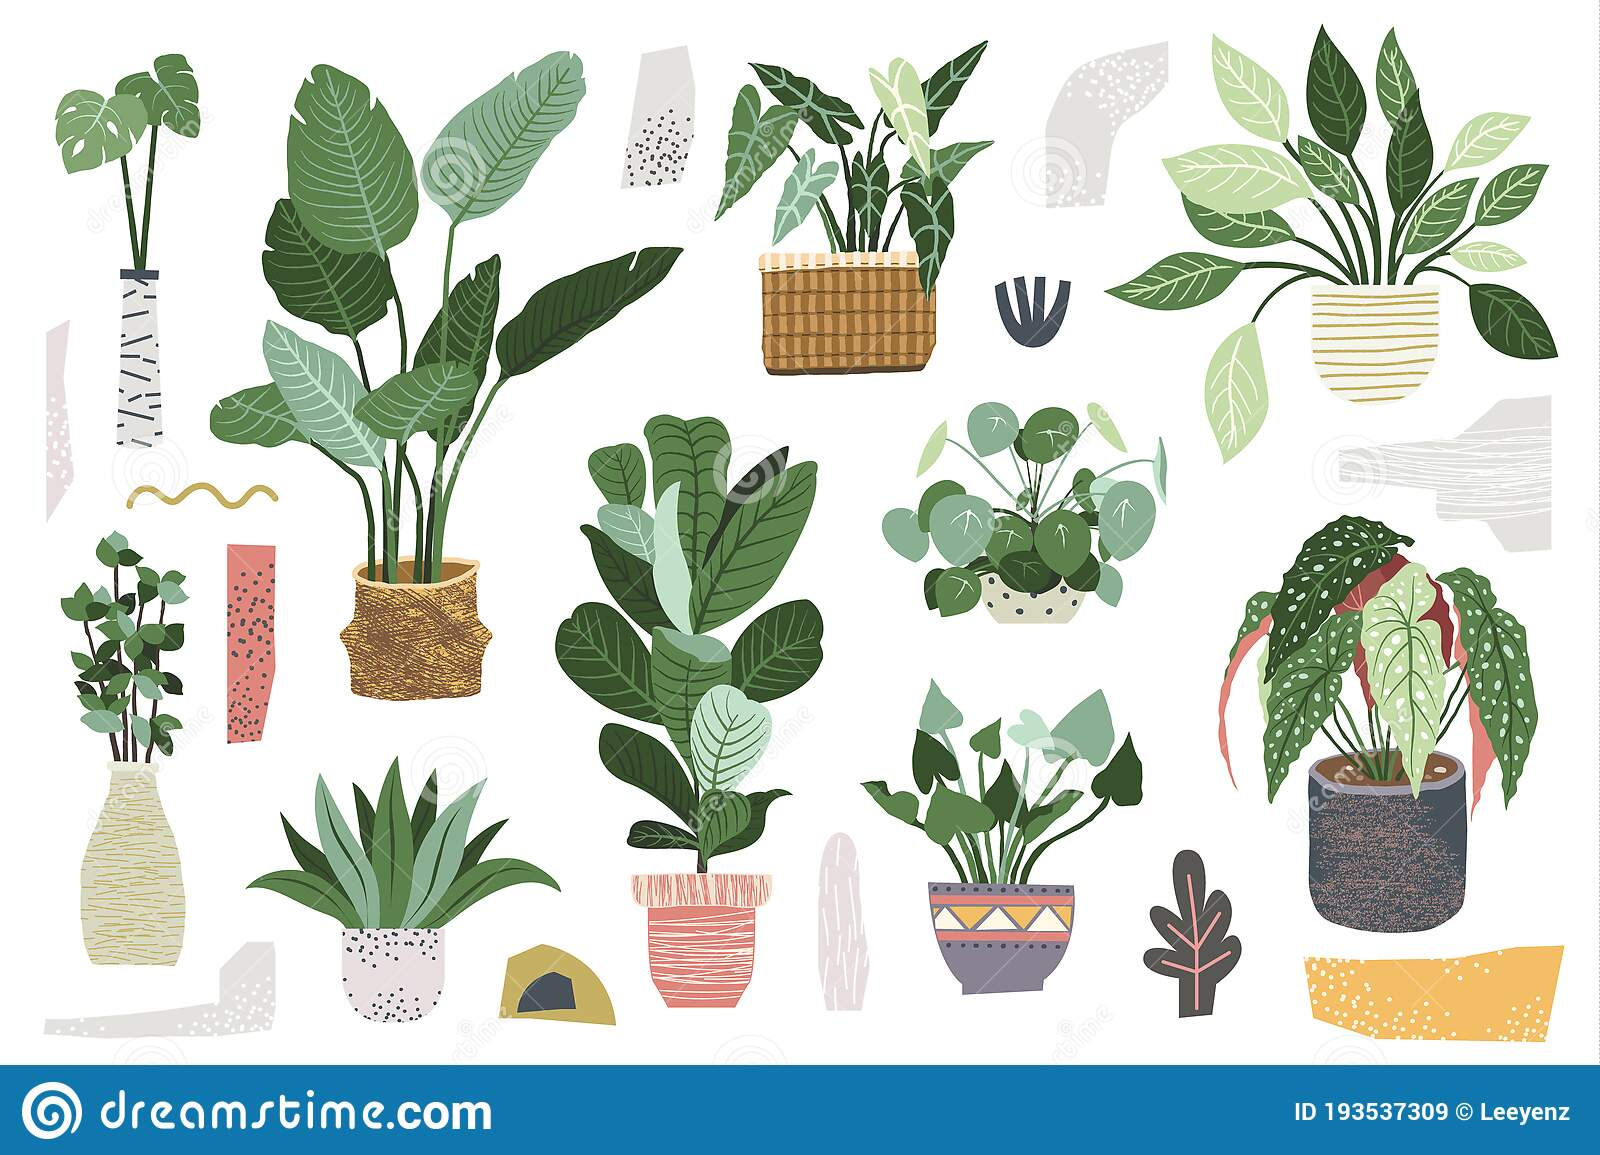 Greenery Indoor House Plant Collections Stock Vector Illustration Of Garden Floral 193537309